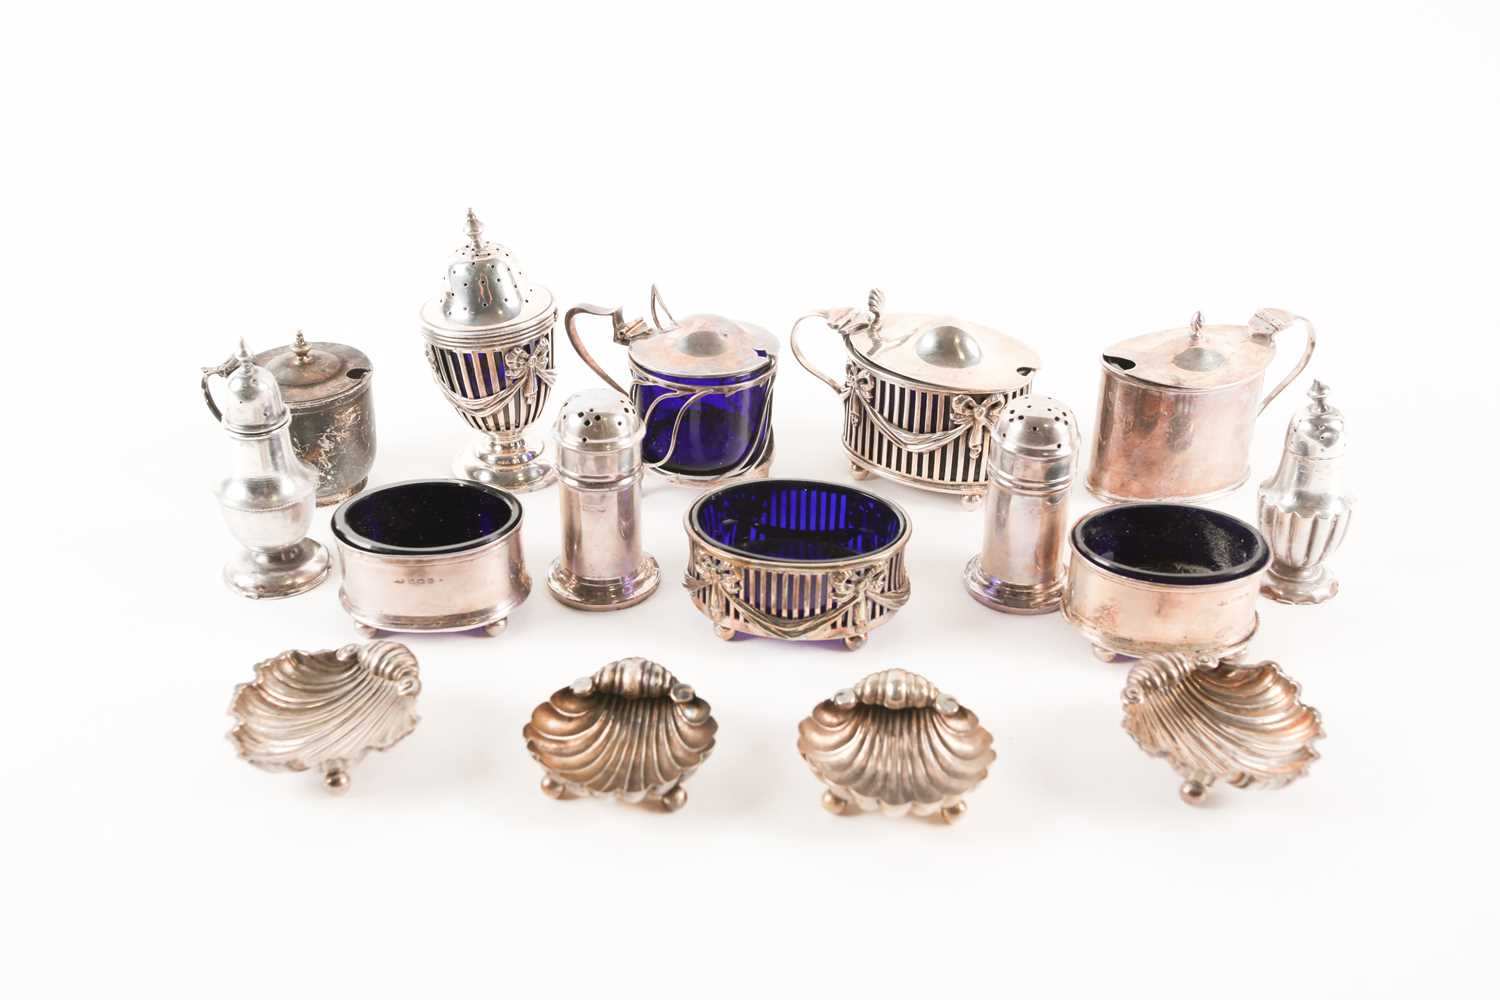 A collection of silver cruet items including lidded mustards, peppers and salts. Mixed makers and